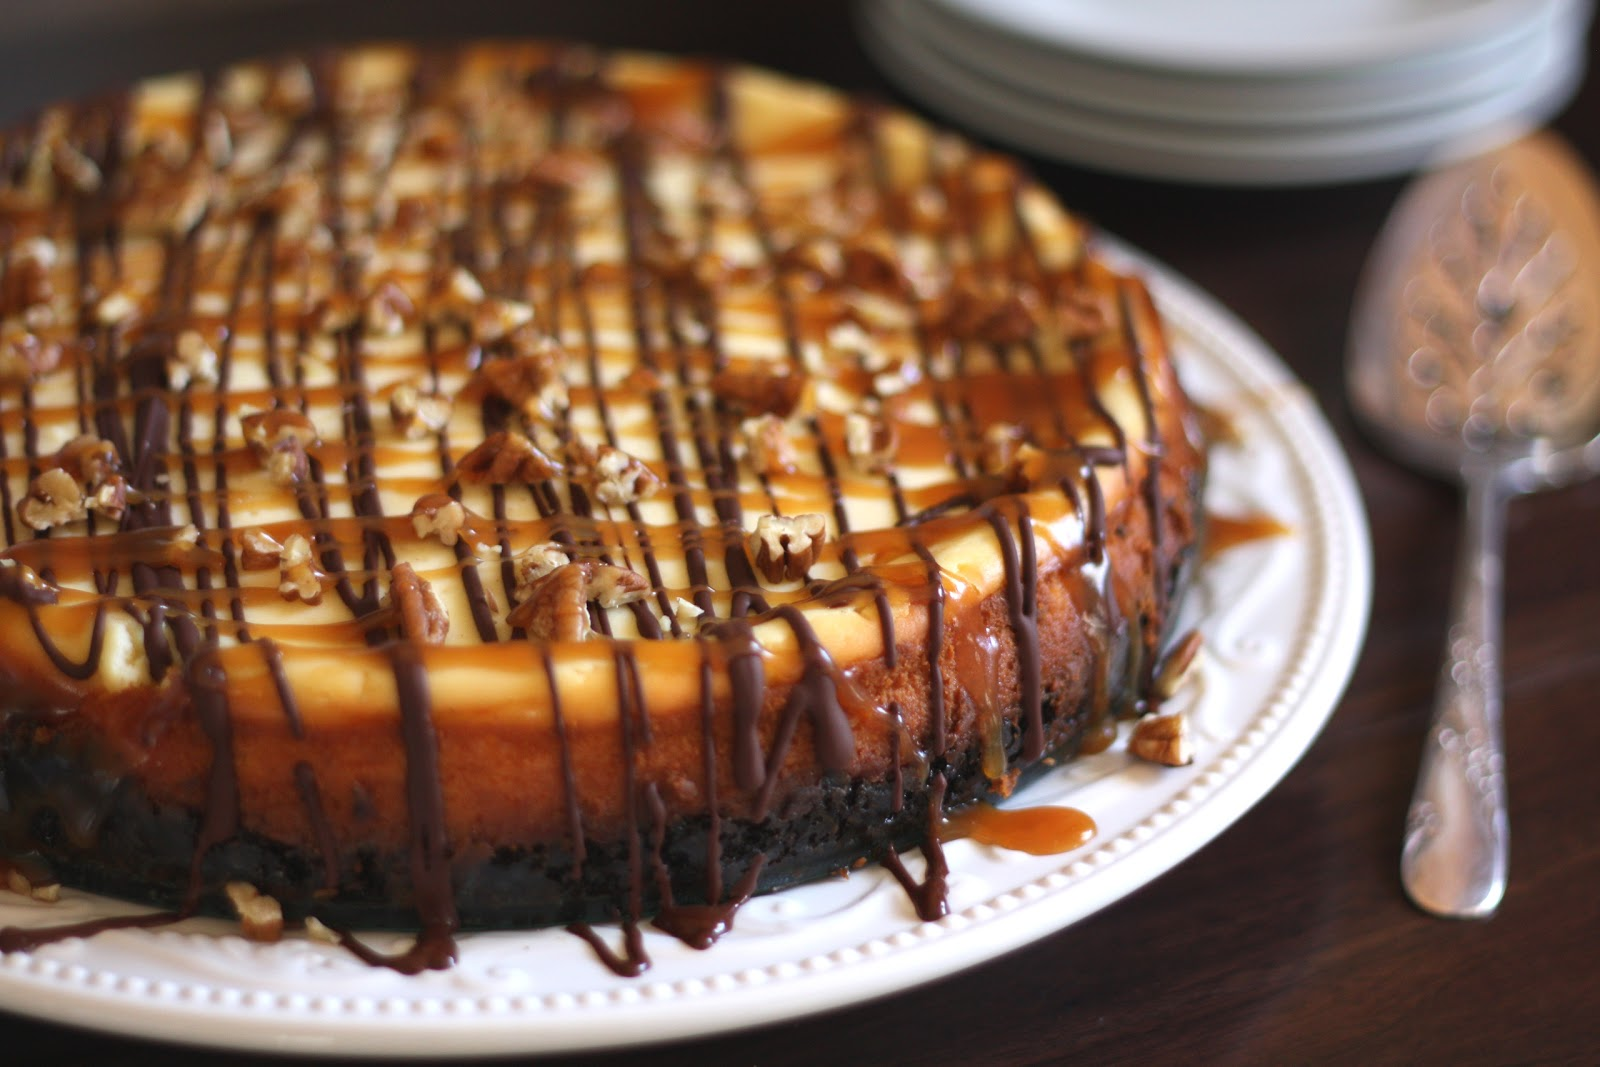 Barefeet In The Kitchen: Turtle Cheesecake with Caramel, Chocolate and ...